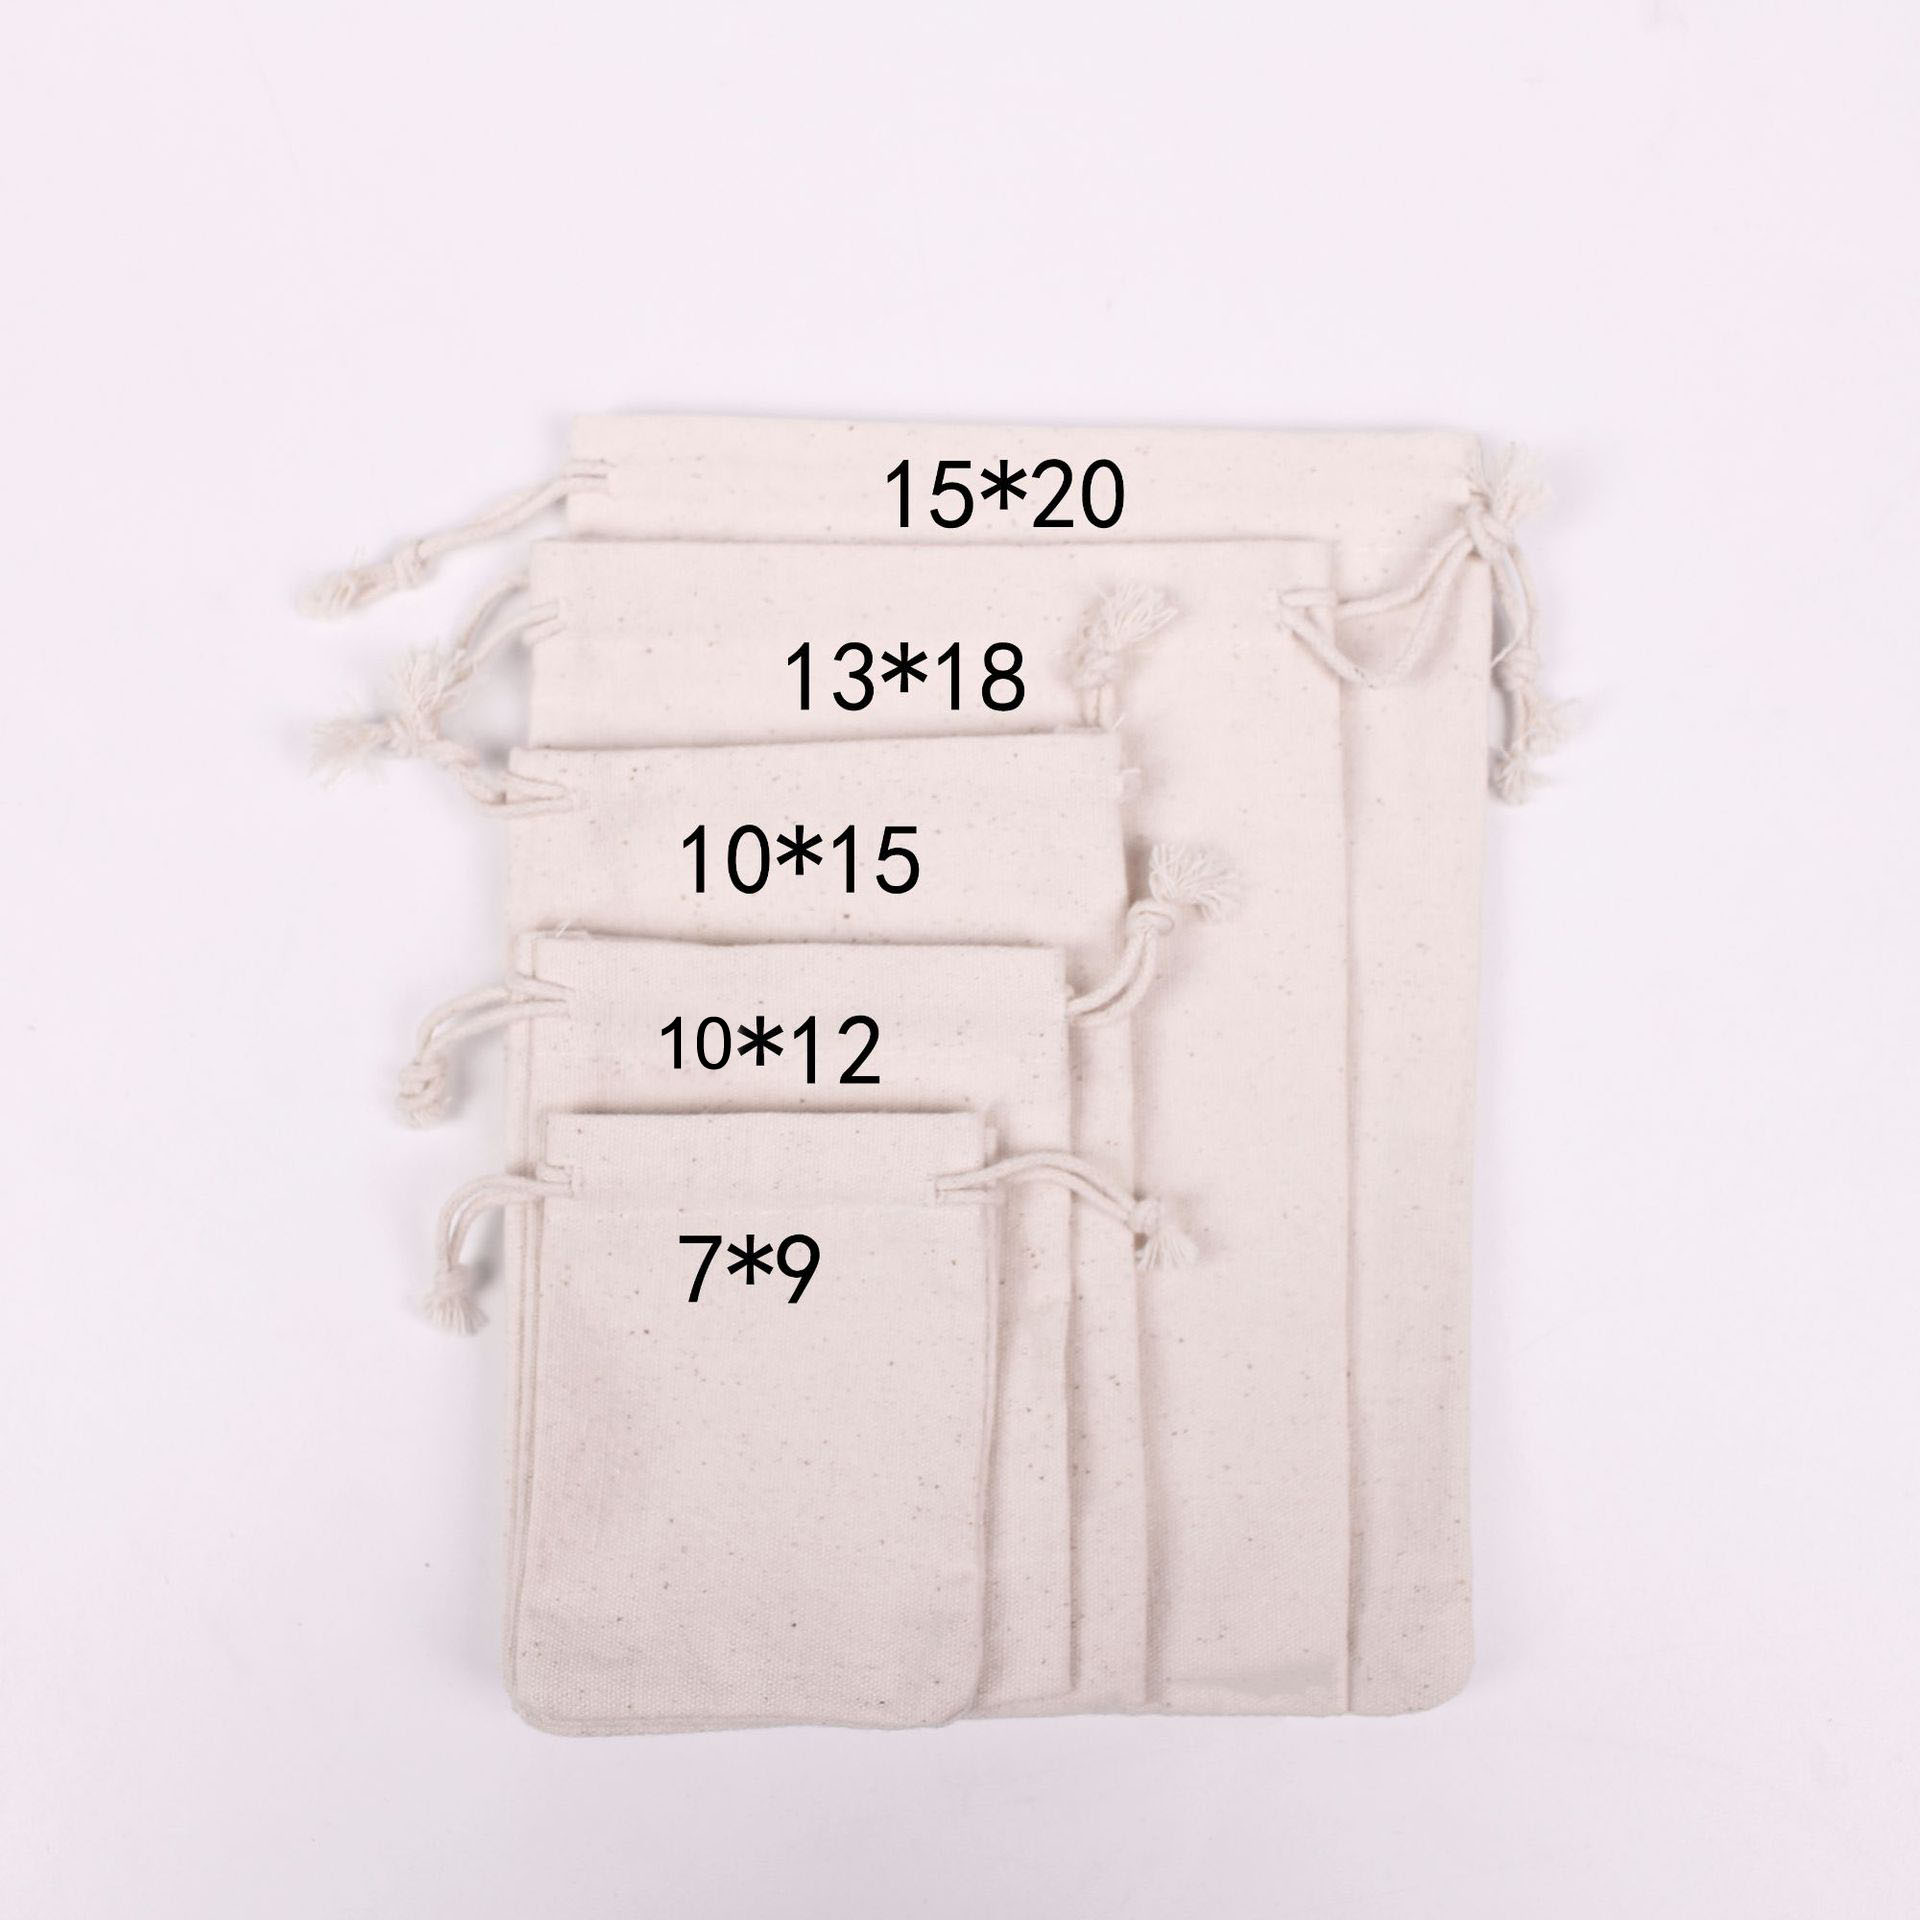 50pcs/lot 7x9/10x12/10x15/13x18/15x20cm Drawstring Natural Canvas Cotton Bags & Pouches For Food Packing Bag Custom Print Logo